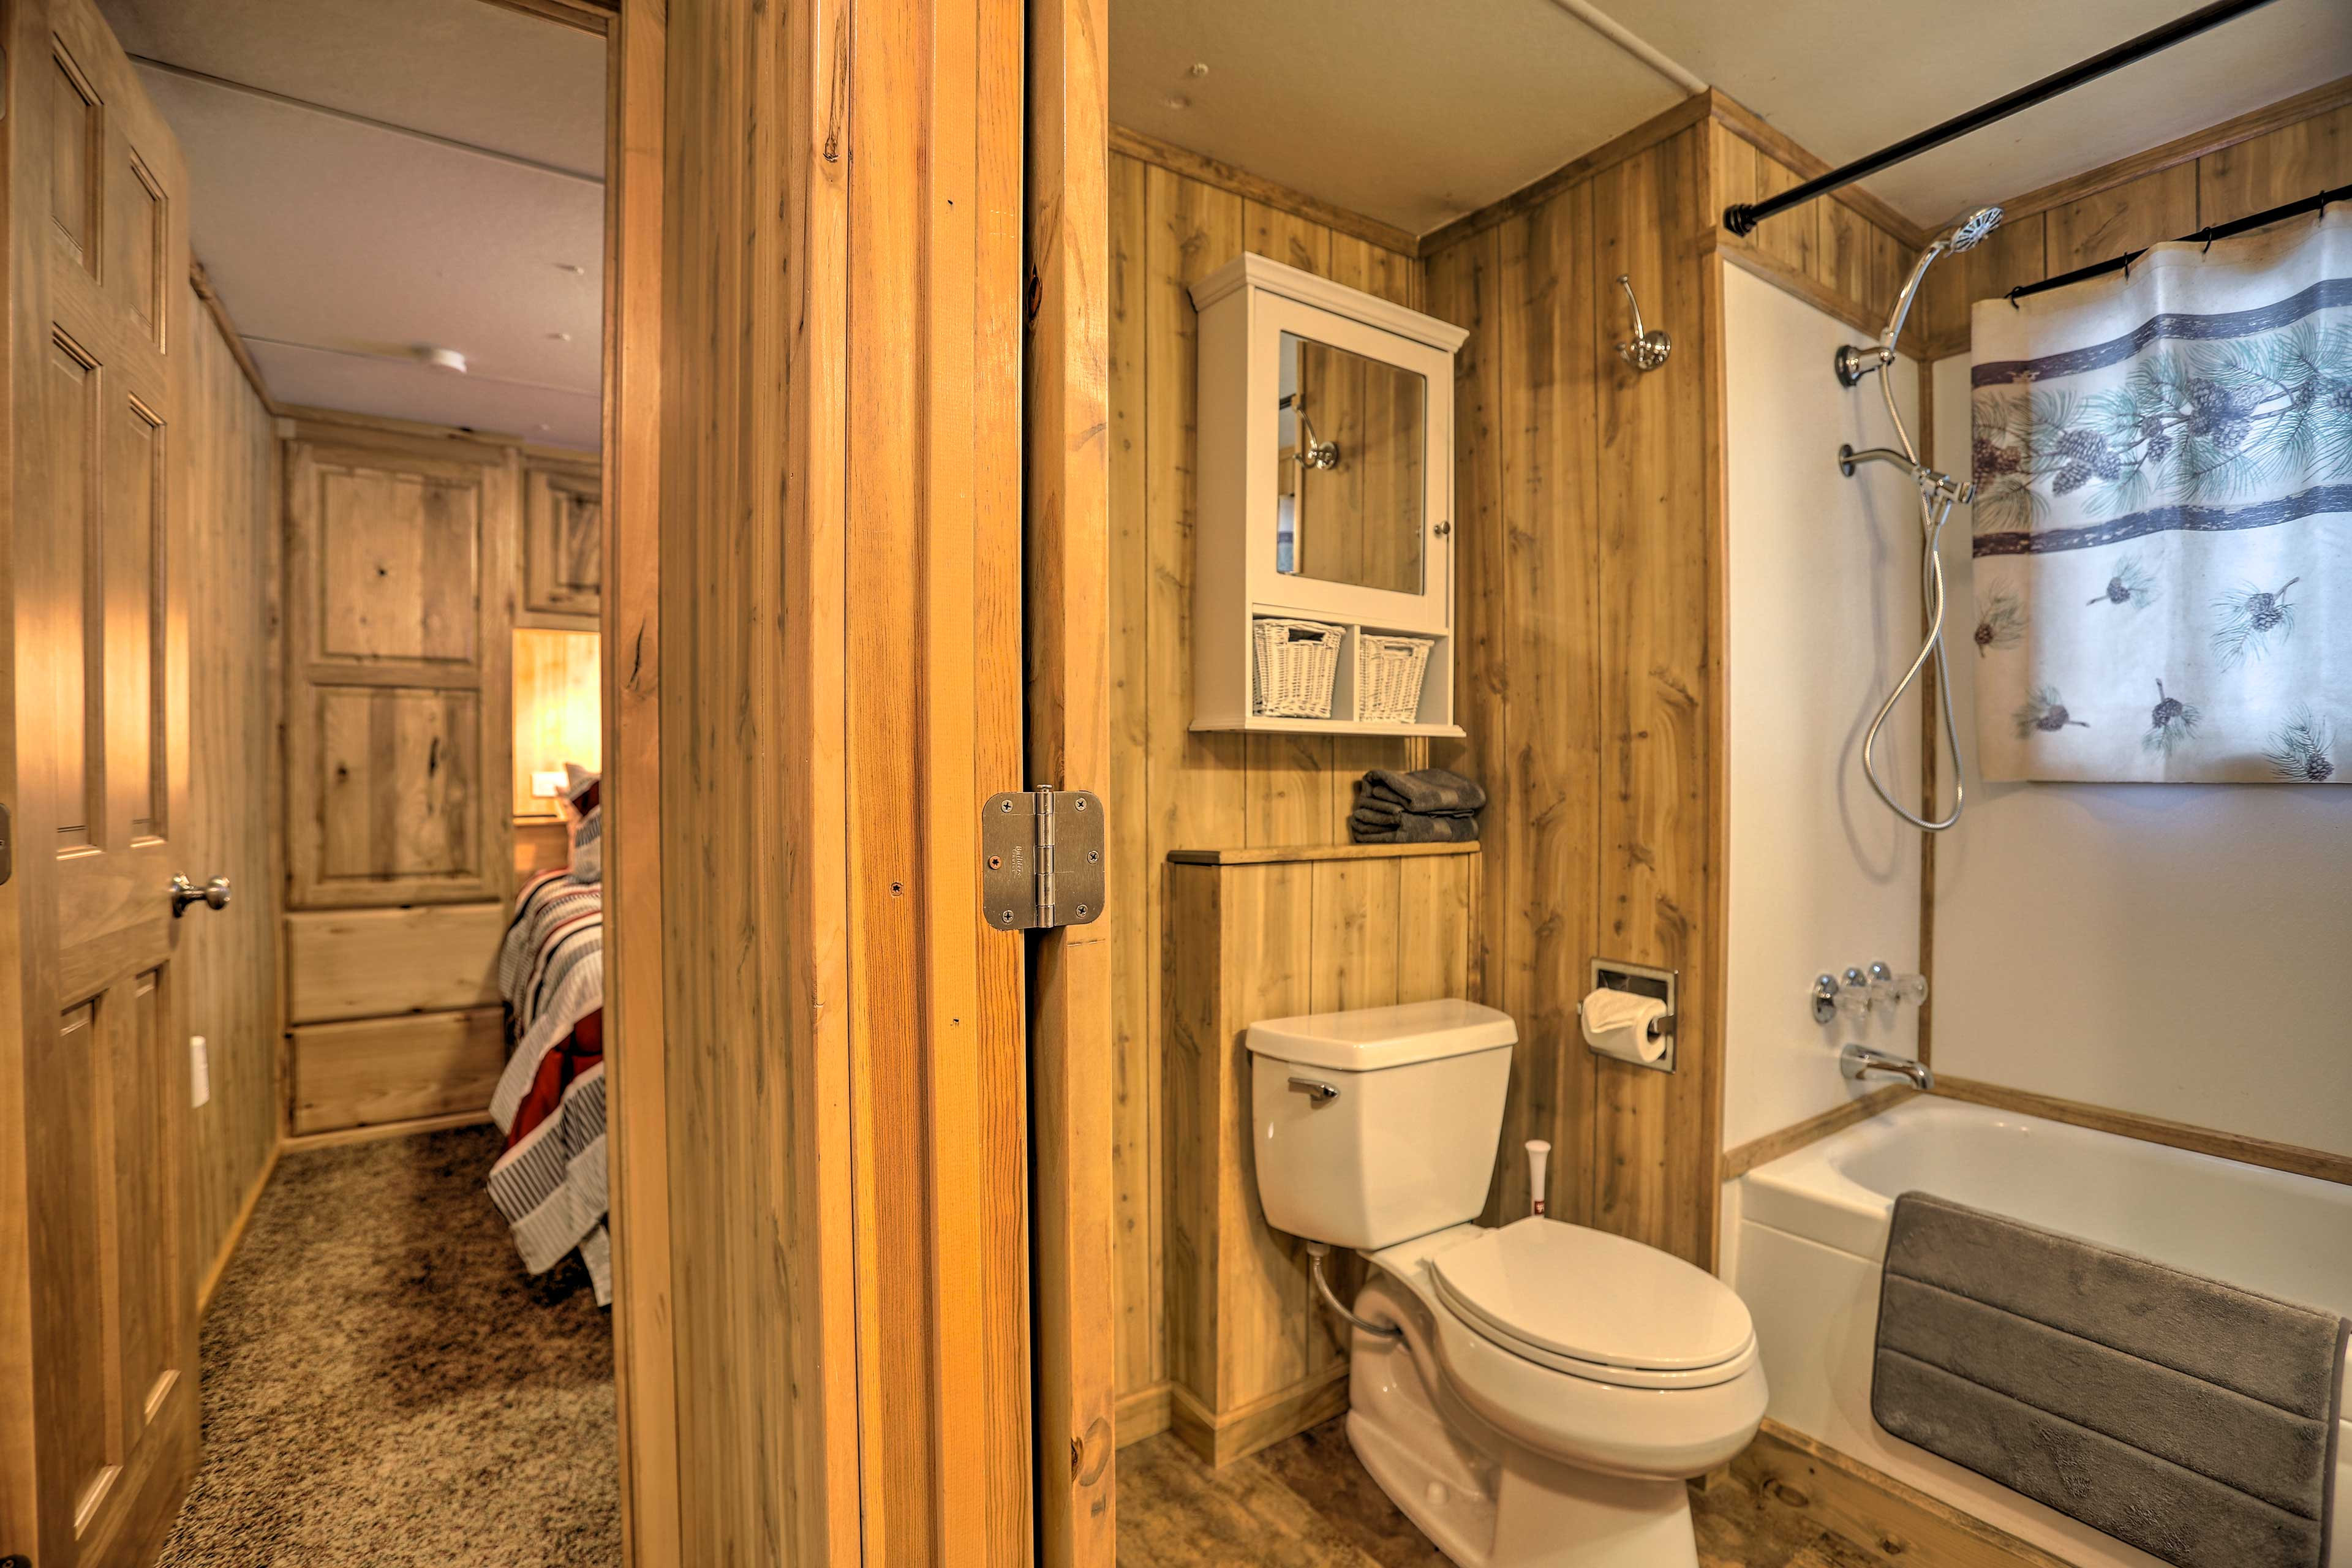 The bathroom is mere steps from the bedroom.